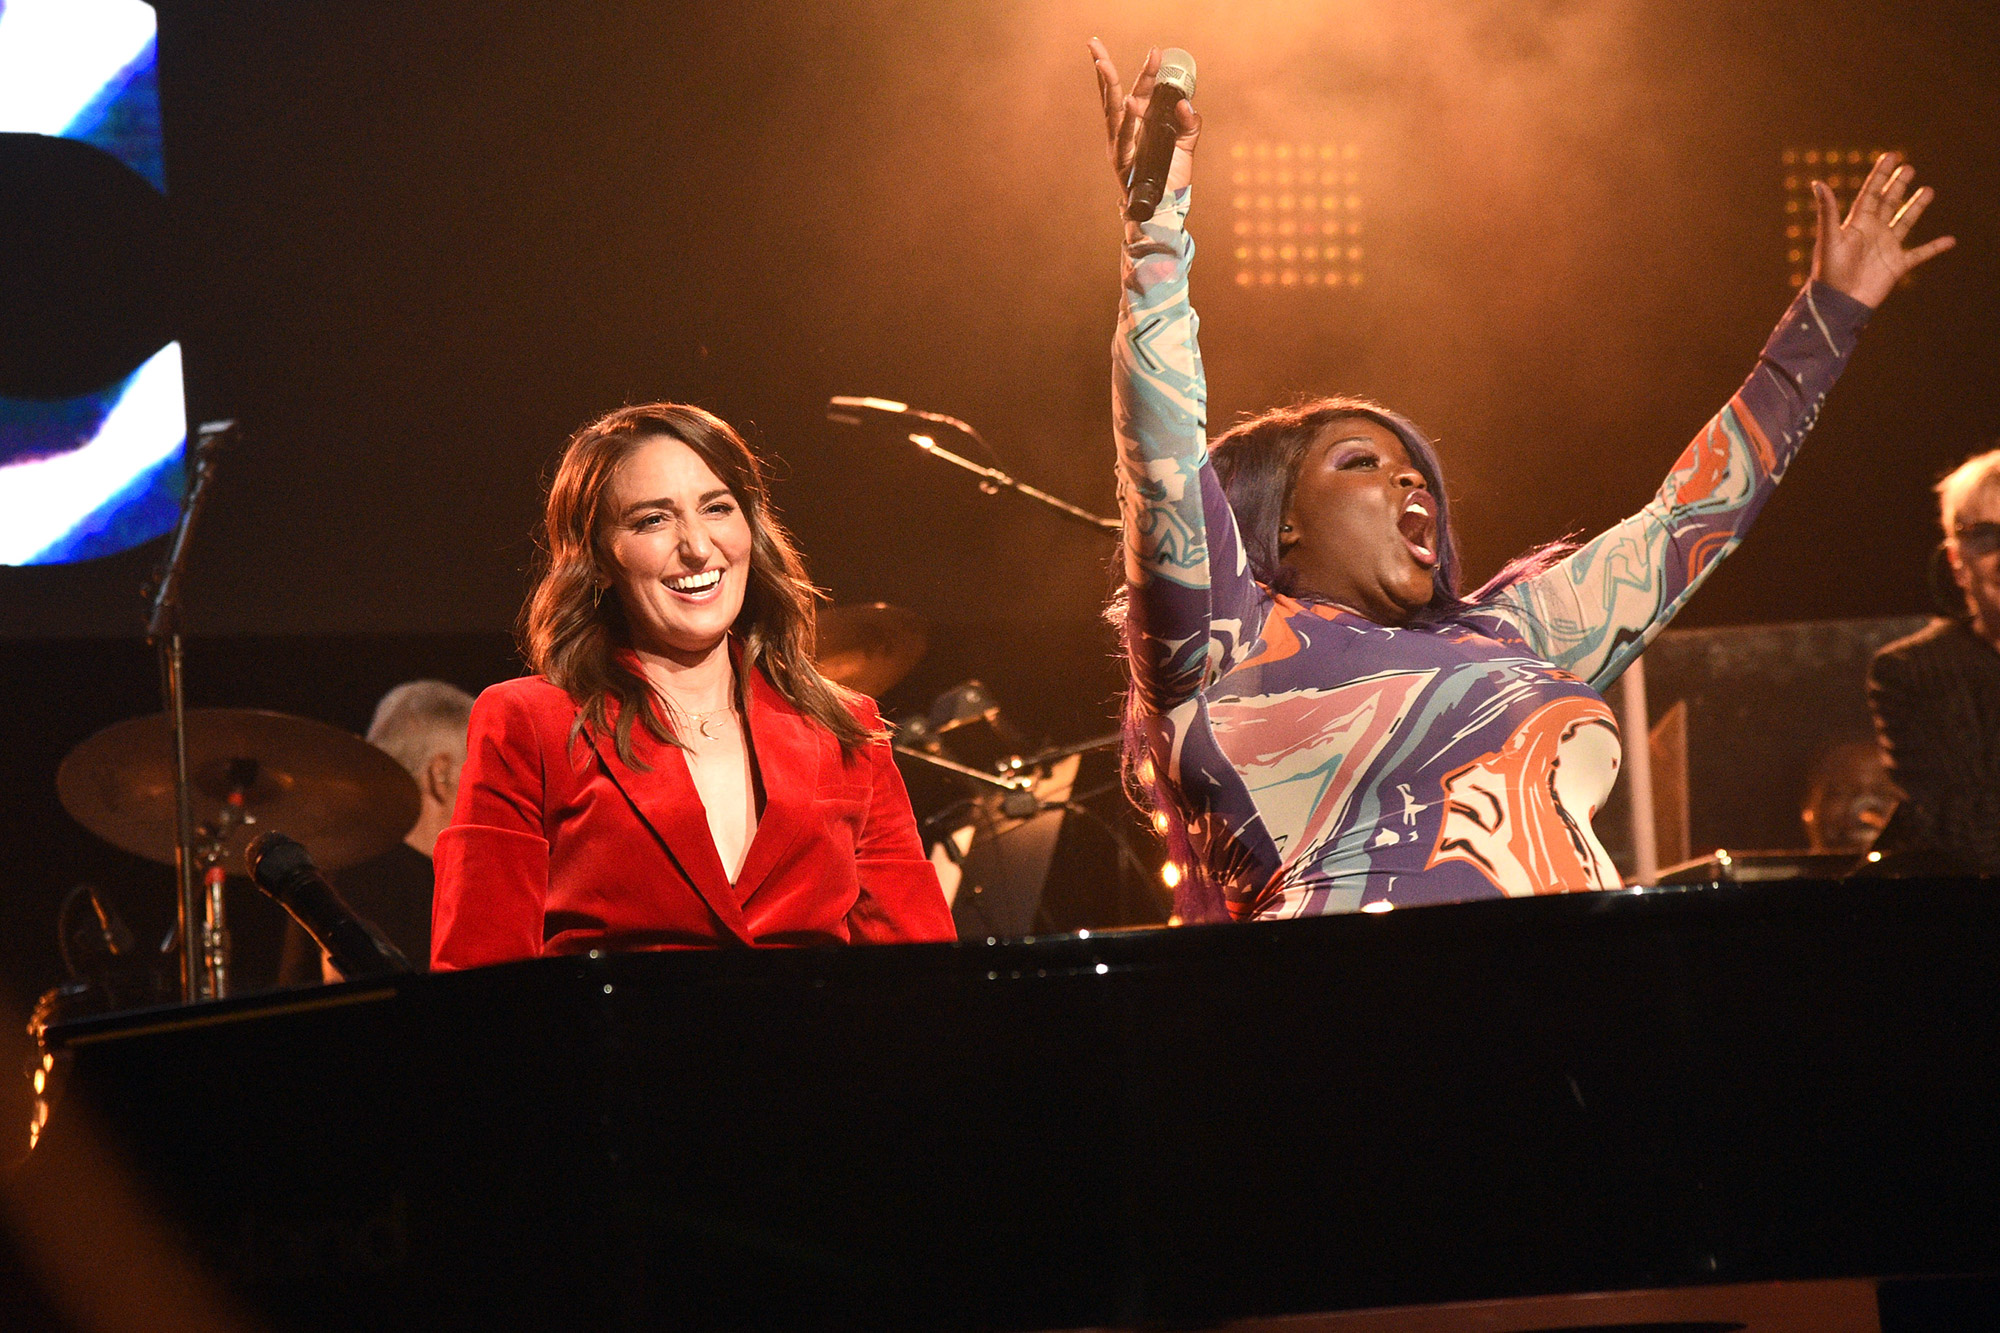 Sara Bareilles (L) and Yola perform at the Fifth Annual LOVE ROCKS NYC Benefit Concert Livestream for God's Love We Deliver at The Beacon Theatre on June 03, 2021 in New York City